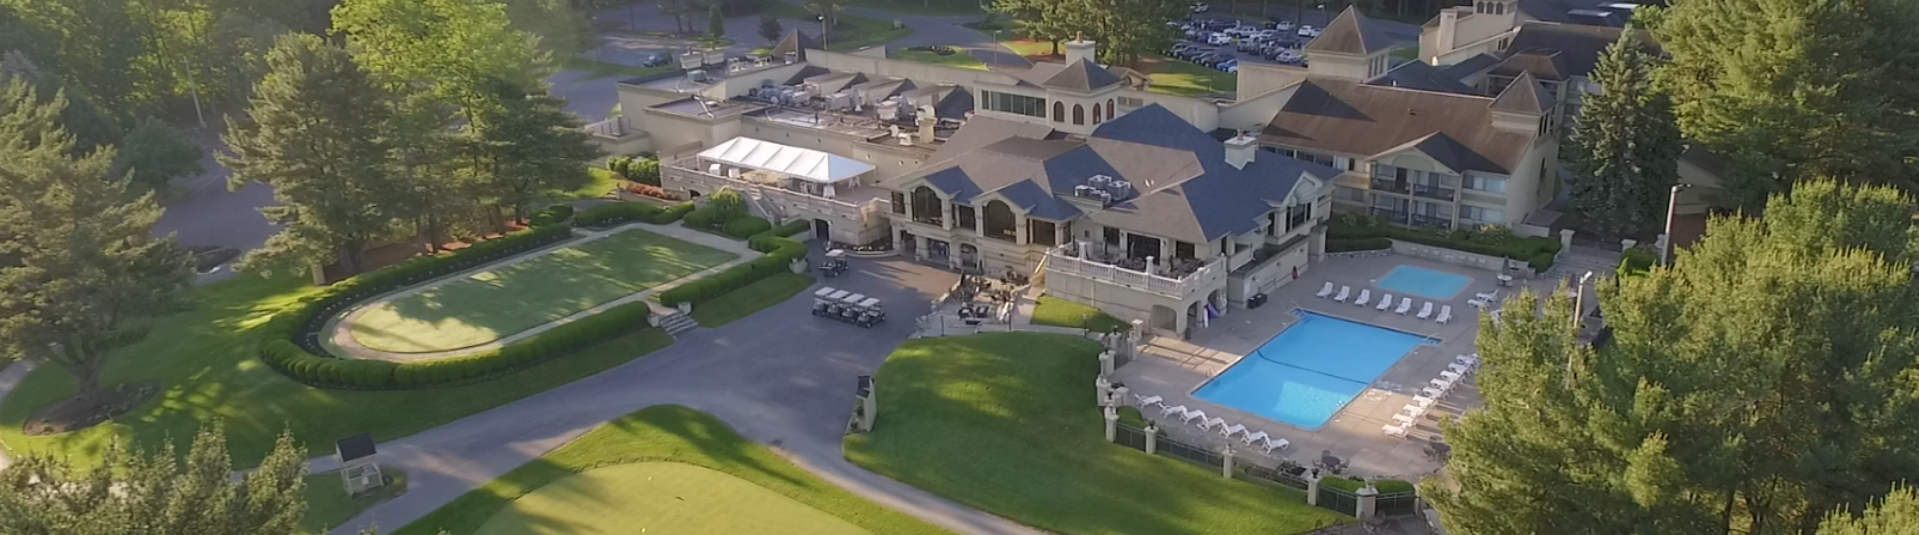 Aerial view of the clubhouse at Toftees Golf Resort